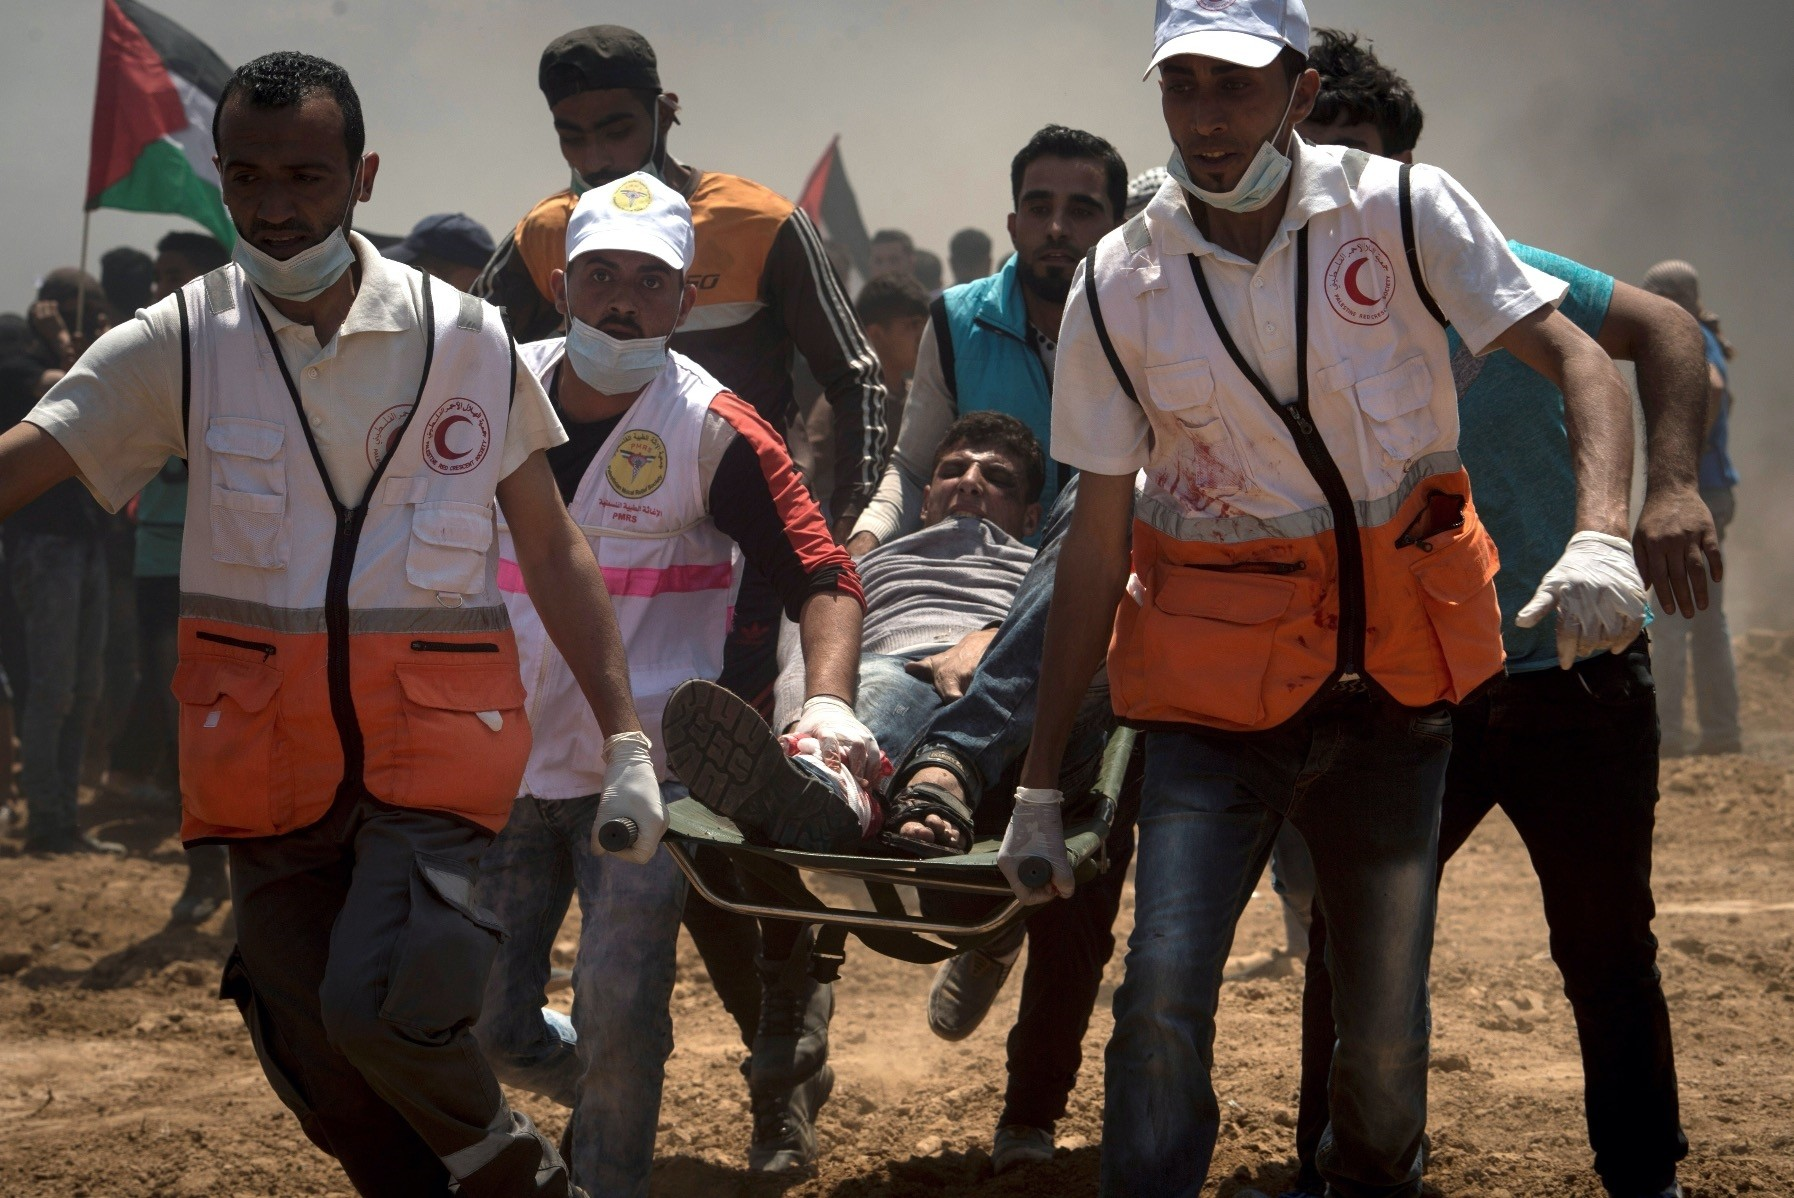 Medics carry a Palestinian demonstrator on a stretcher at the Gaza-Israeli border, May 14.